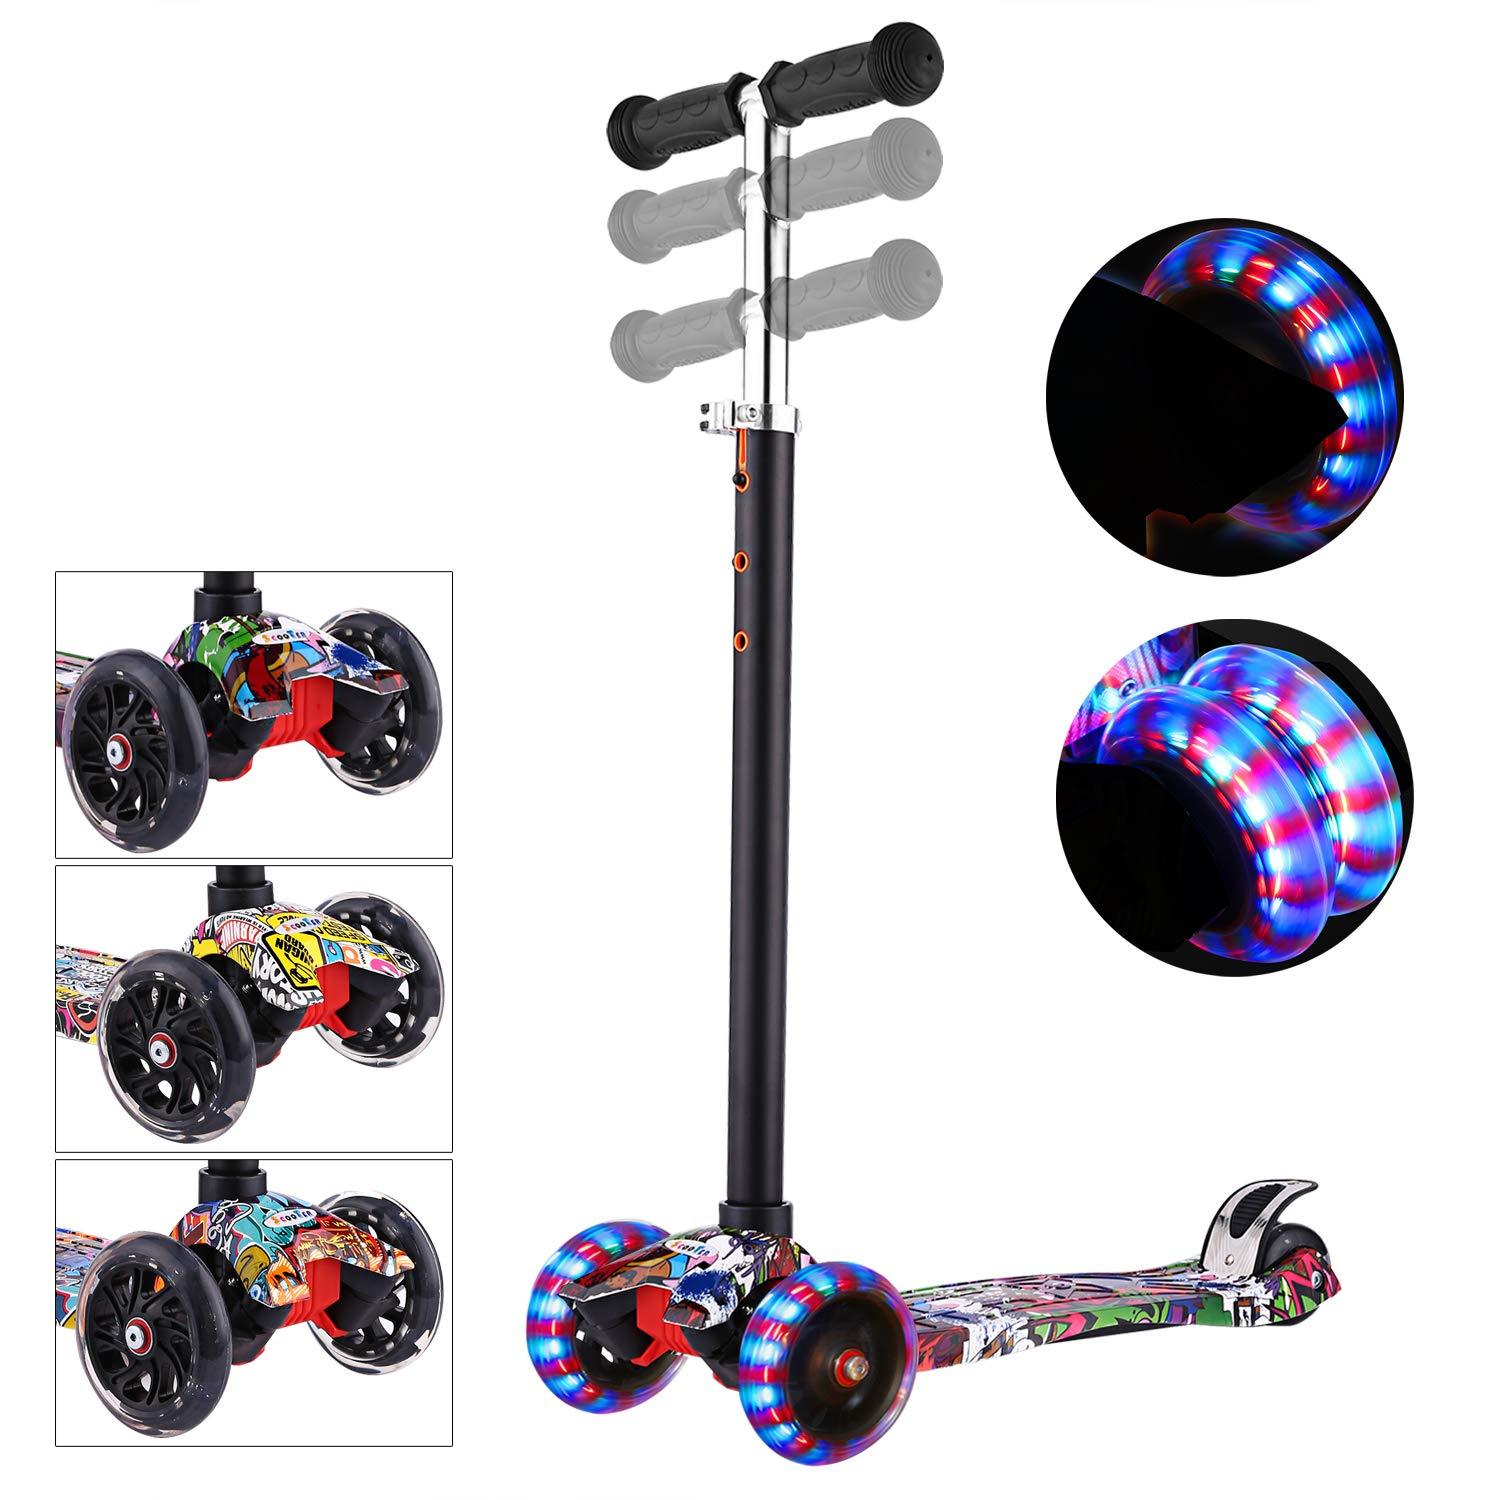 WeSkate Scooters for Kids 3 Wheel Kid Scooter Kid Kick Scooter with Adjustable Height 3 Light Up Flashing Wheel for Boys Girls,Quick Disassembly with One Button